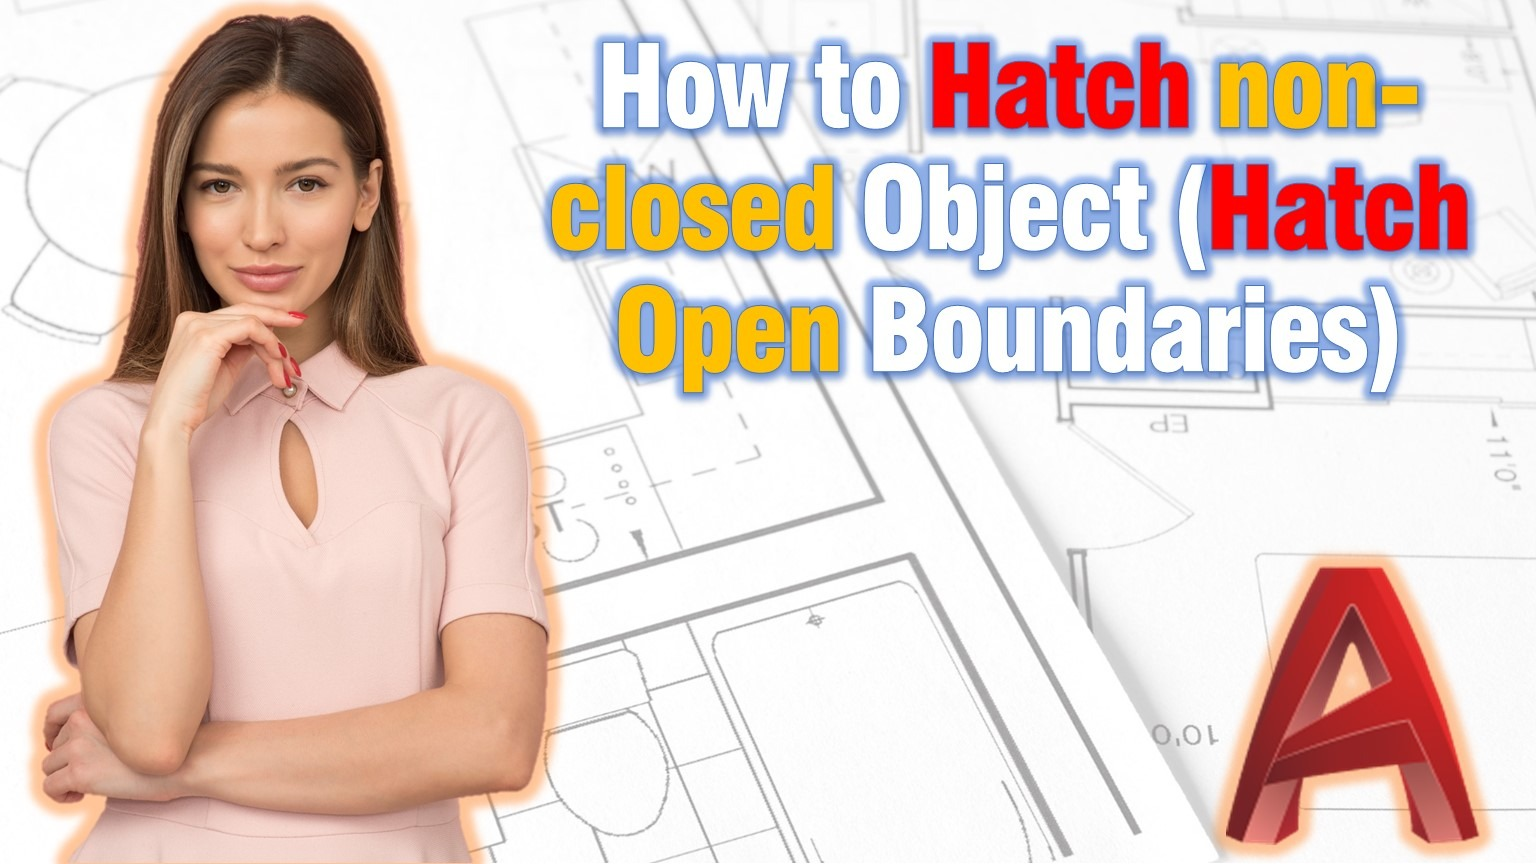 Hatchopen boundaries